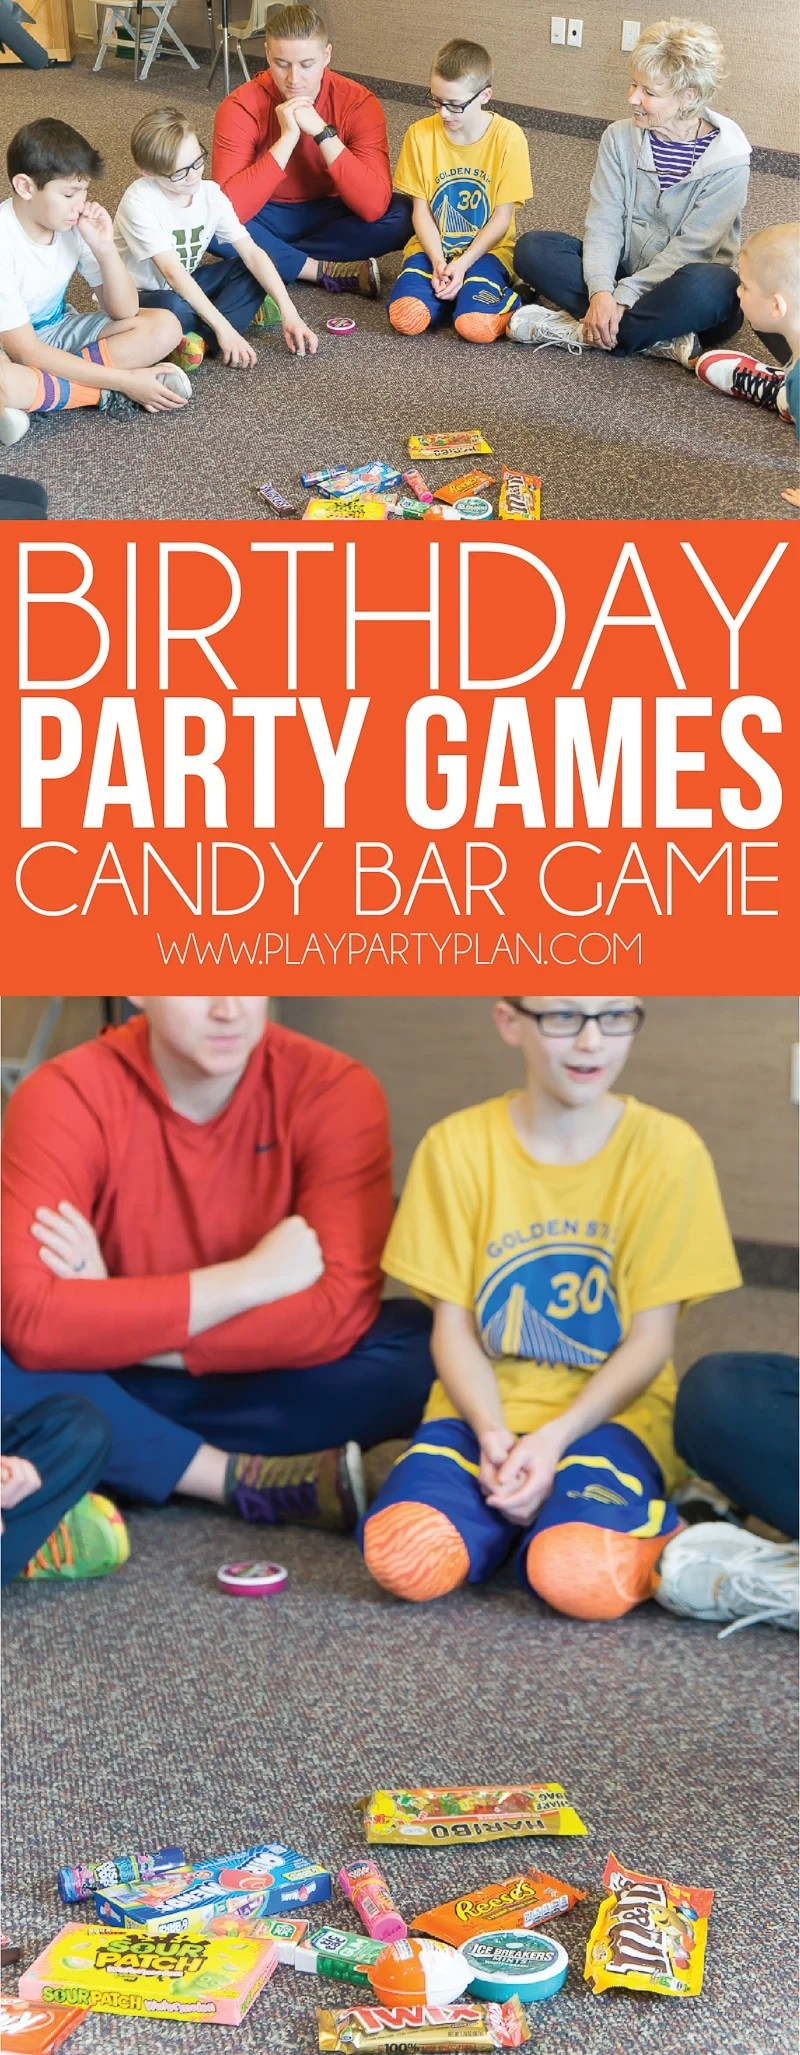 Hilarious Birthday Party Games For Kids & Adults